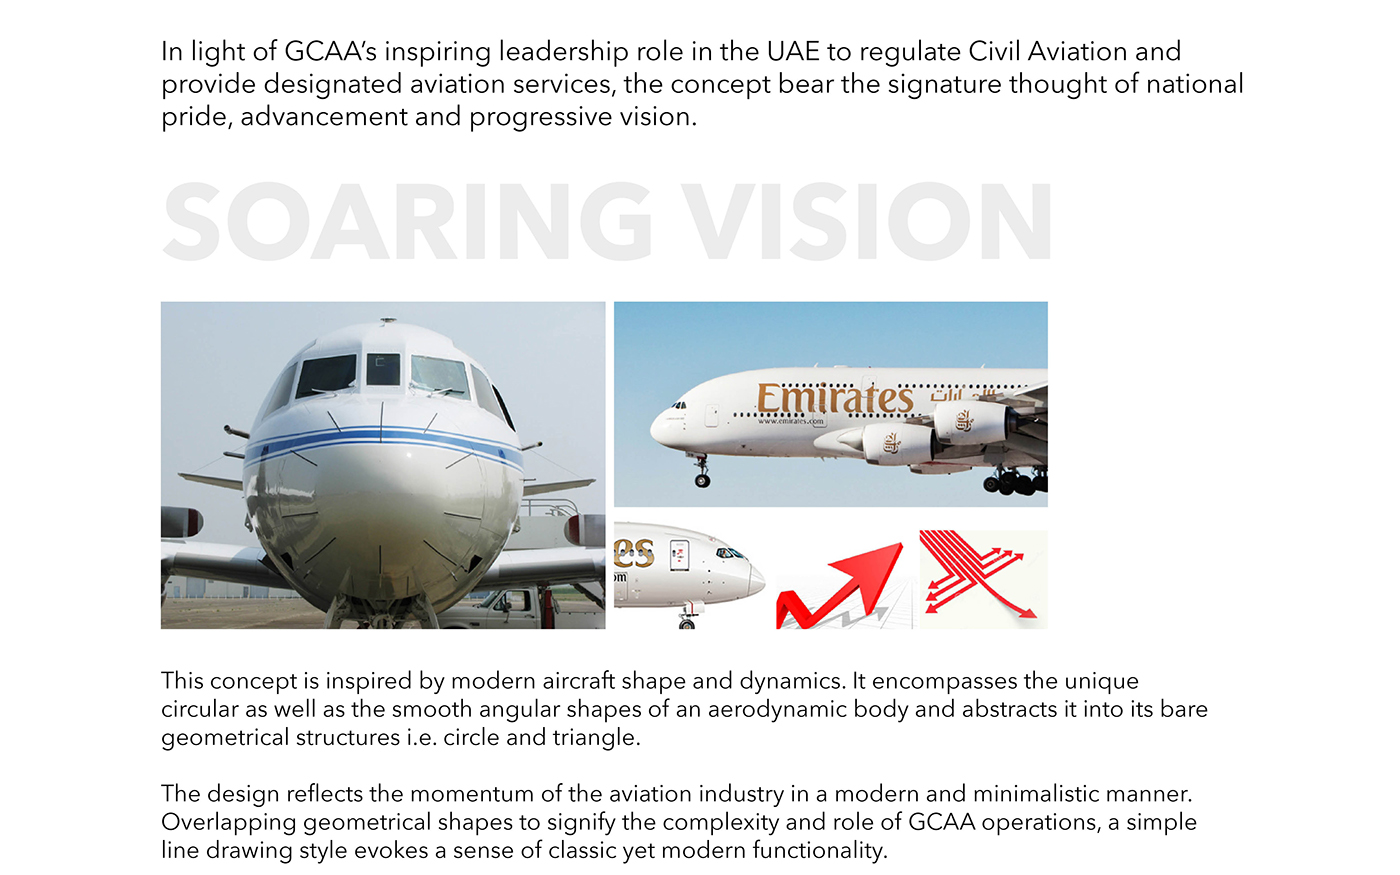 airline industry in uae